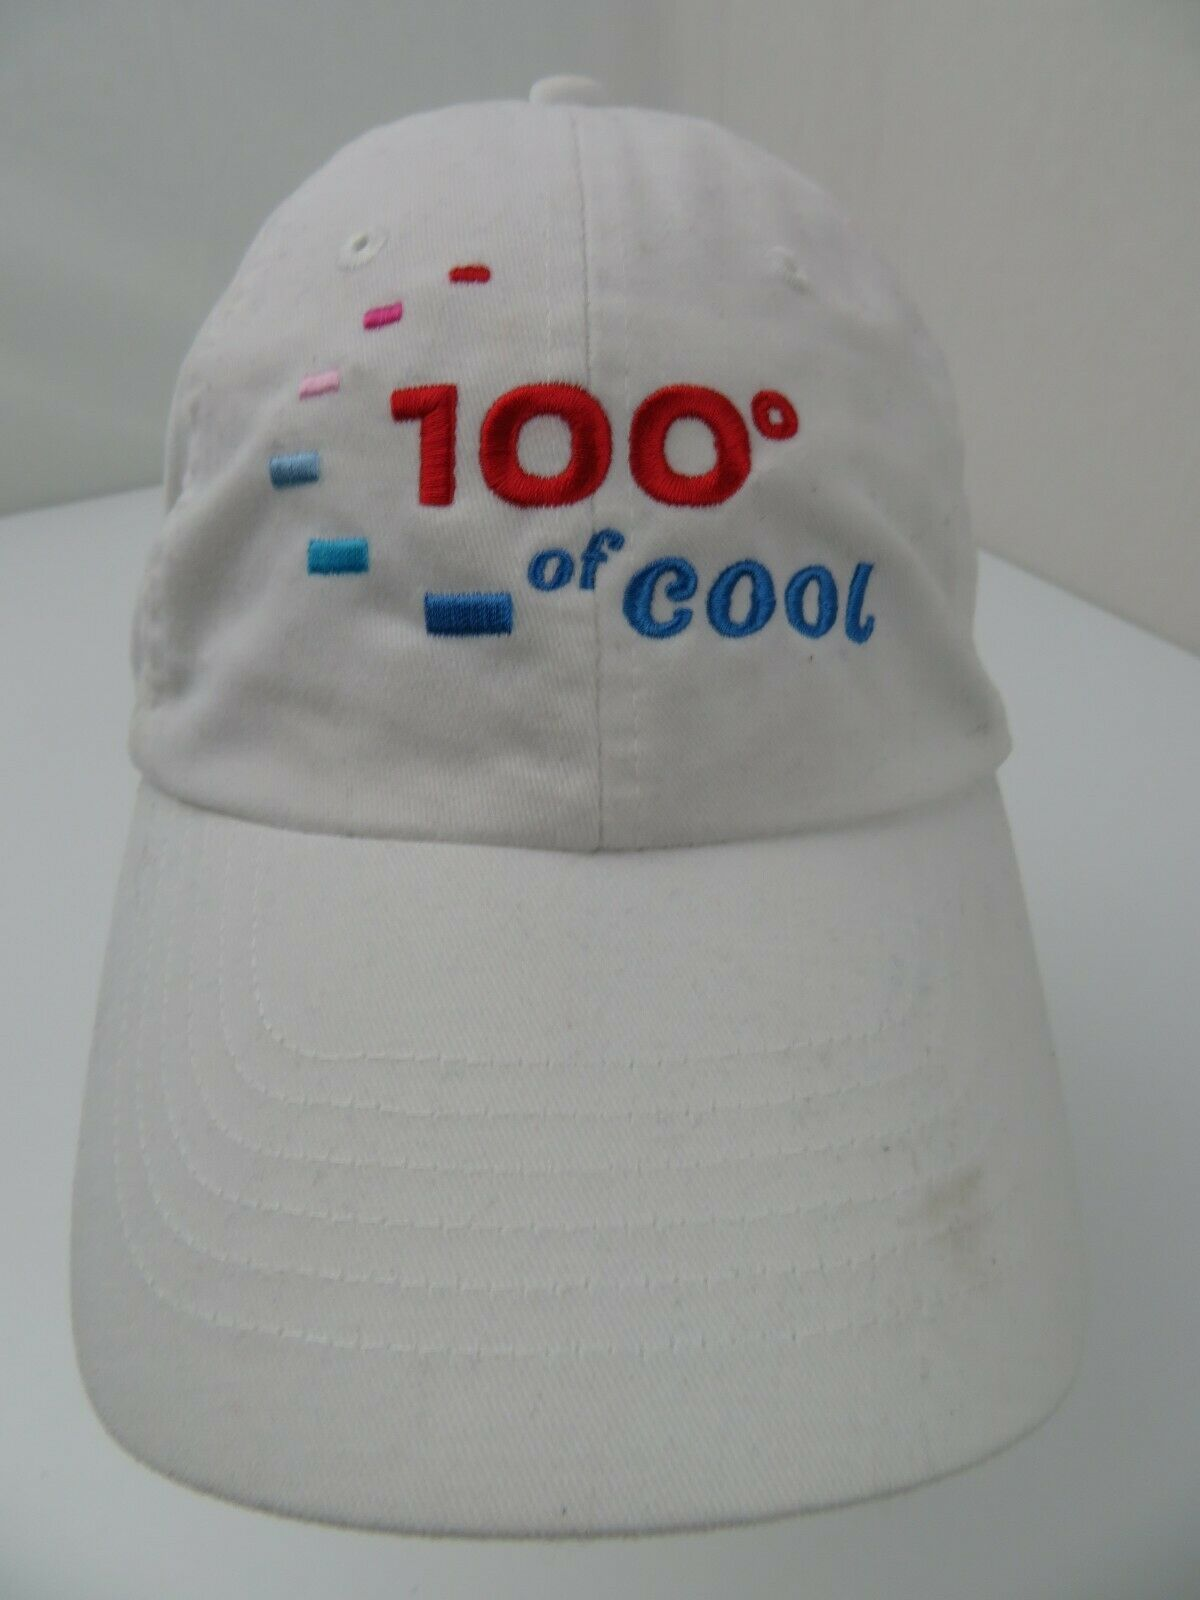 Primary image for 100 Degree of Cool Dallas Museum of Art Adjustable Adult Cap Hat